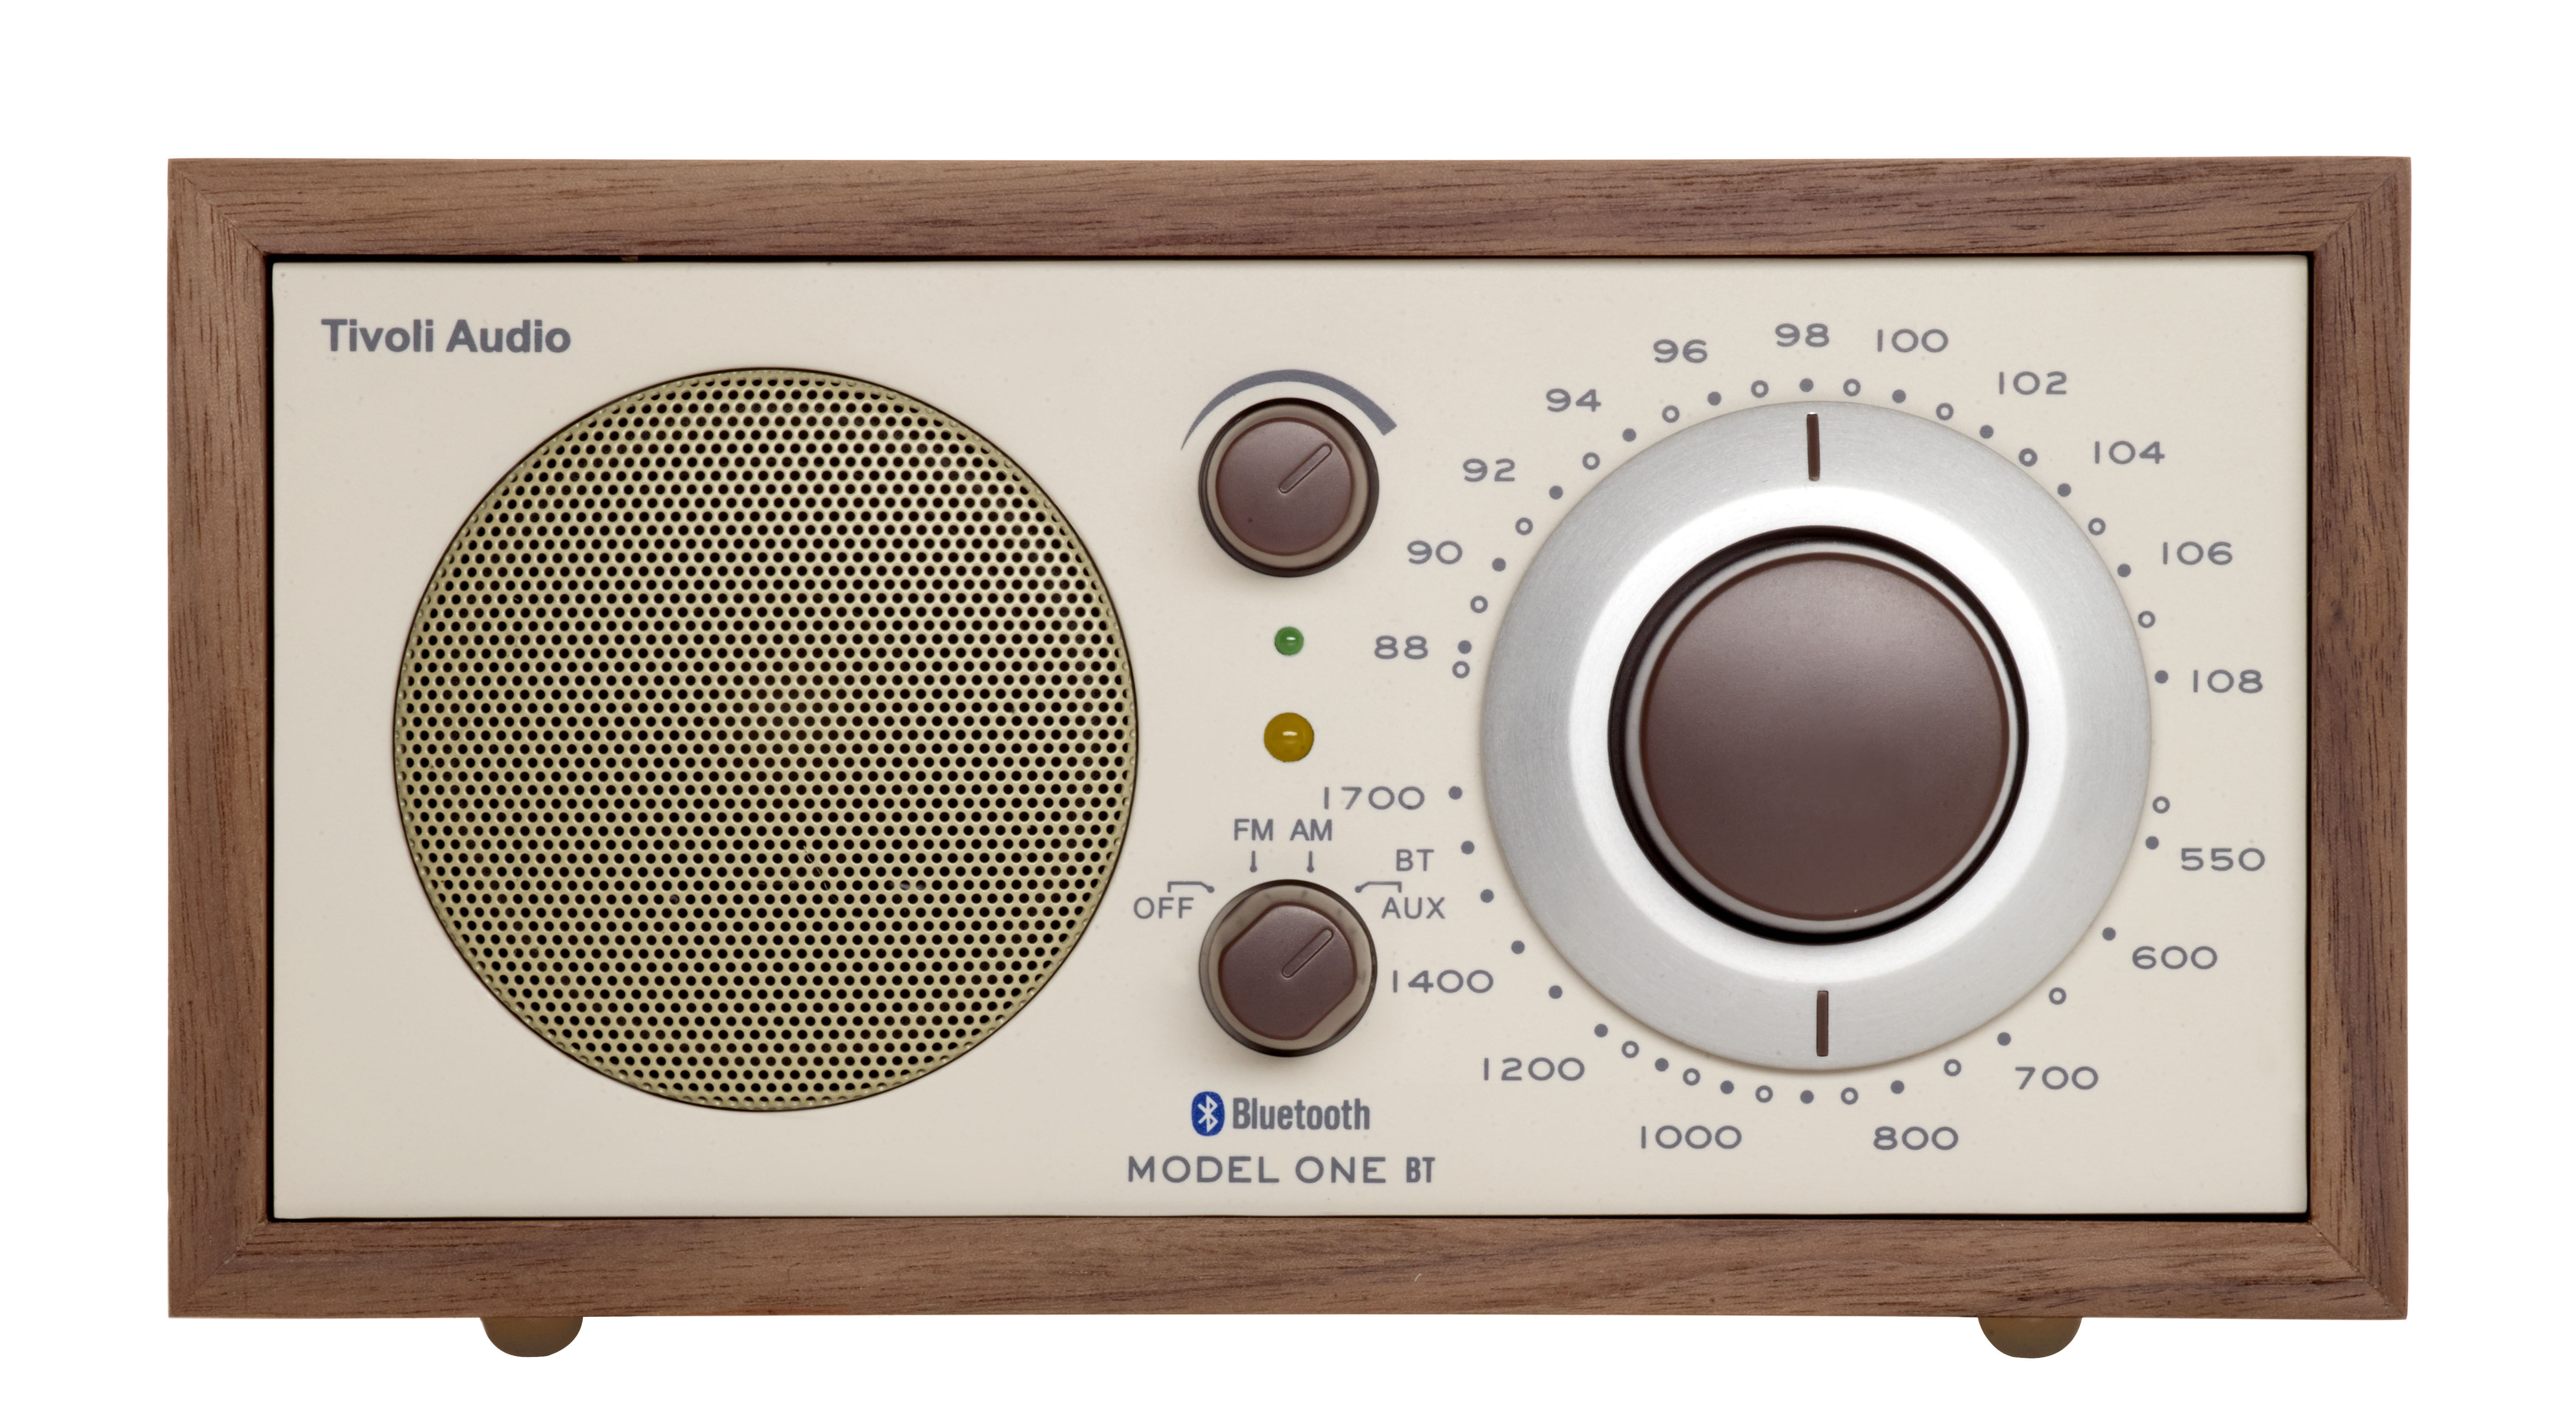 radio model one bt enceinte bluetooth noyer beige. Black Bedroom Furniture Sets. Home Design Ideas